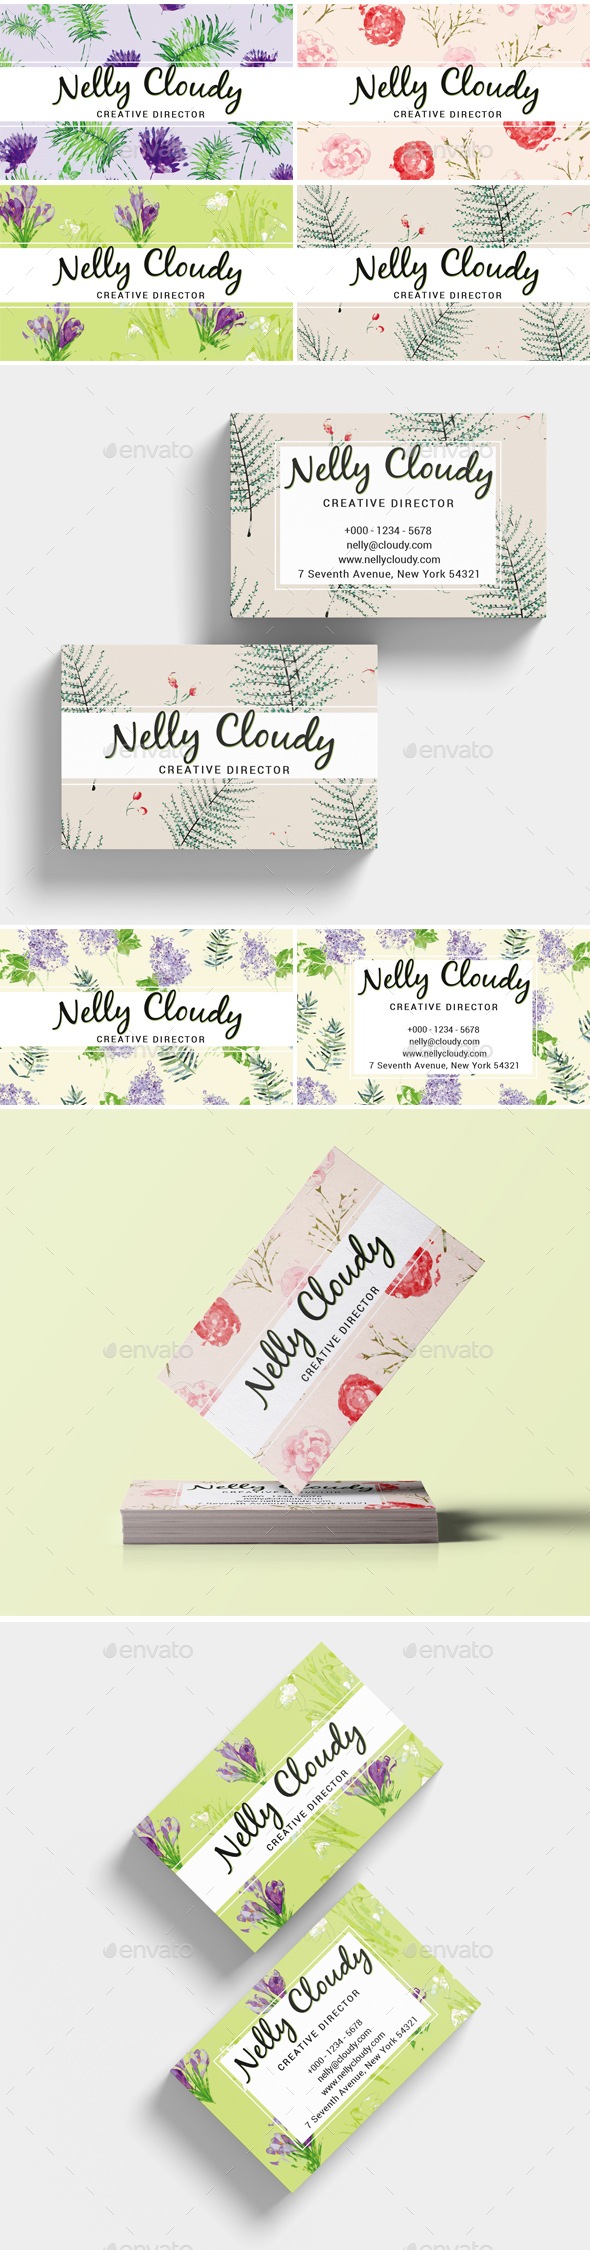 Watercolor Creative Business Card - Retro/Vintage Business Cards